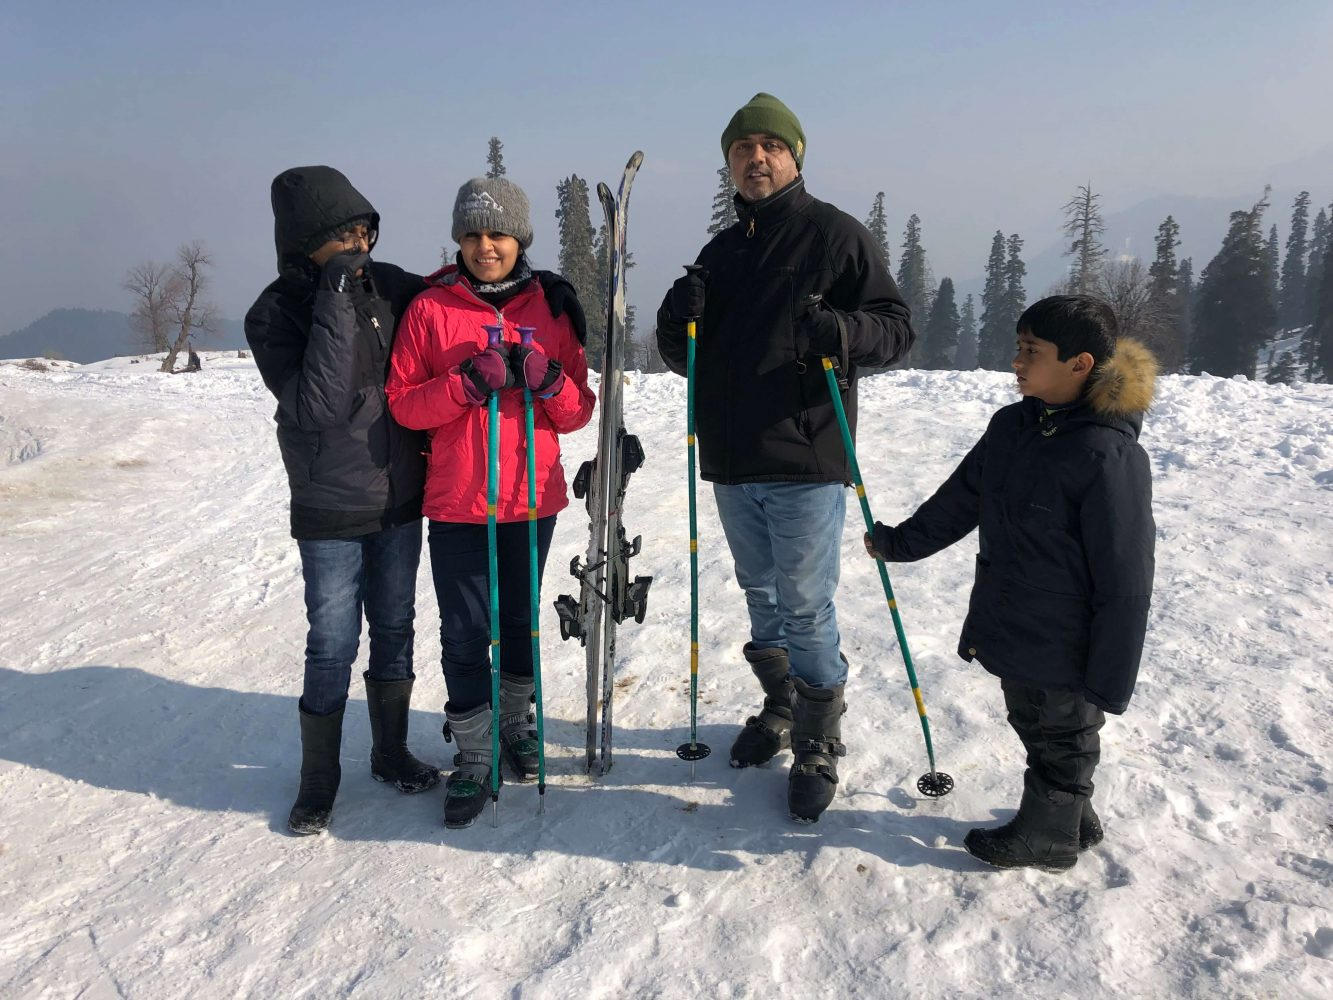 Family sharing skiing experiences together on a vacation